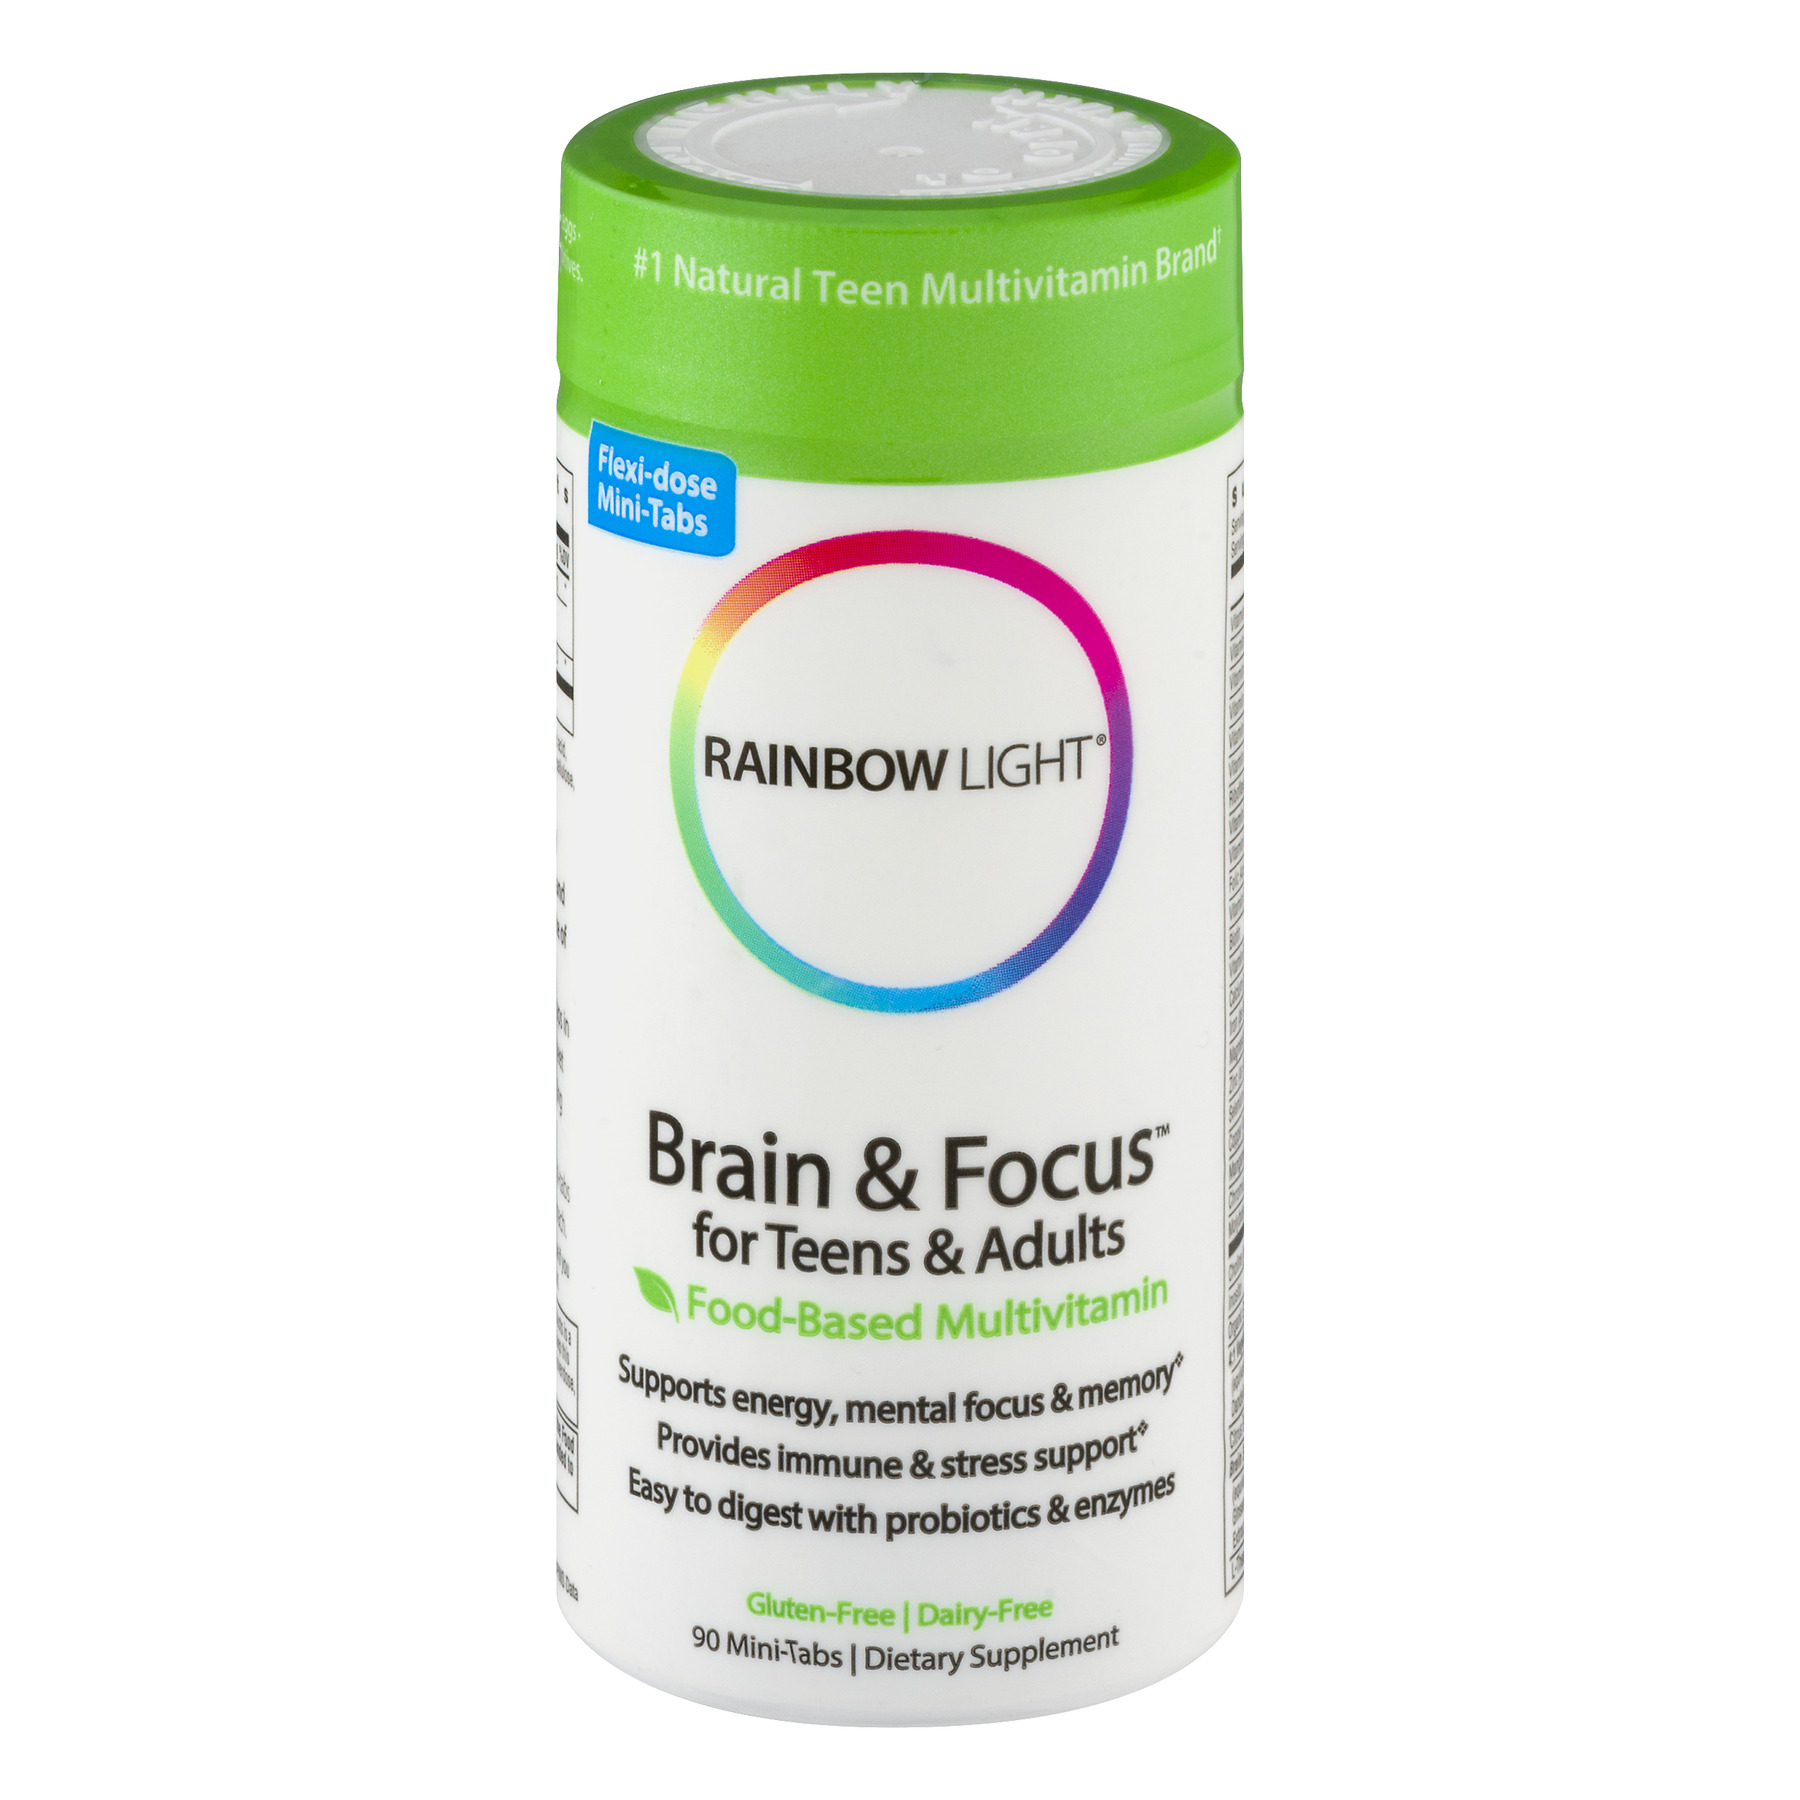 Rainbow Light Brain & Focus for Teens & Adults Mini-Tabs Dietary Supplement - 90 CT